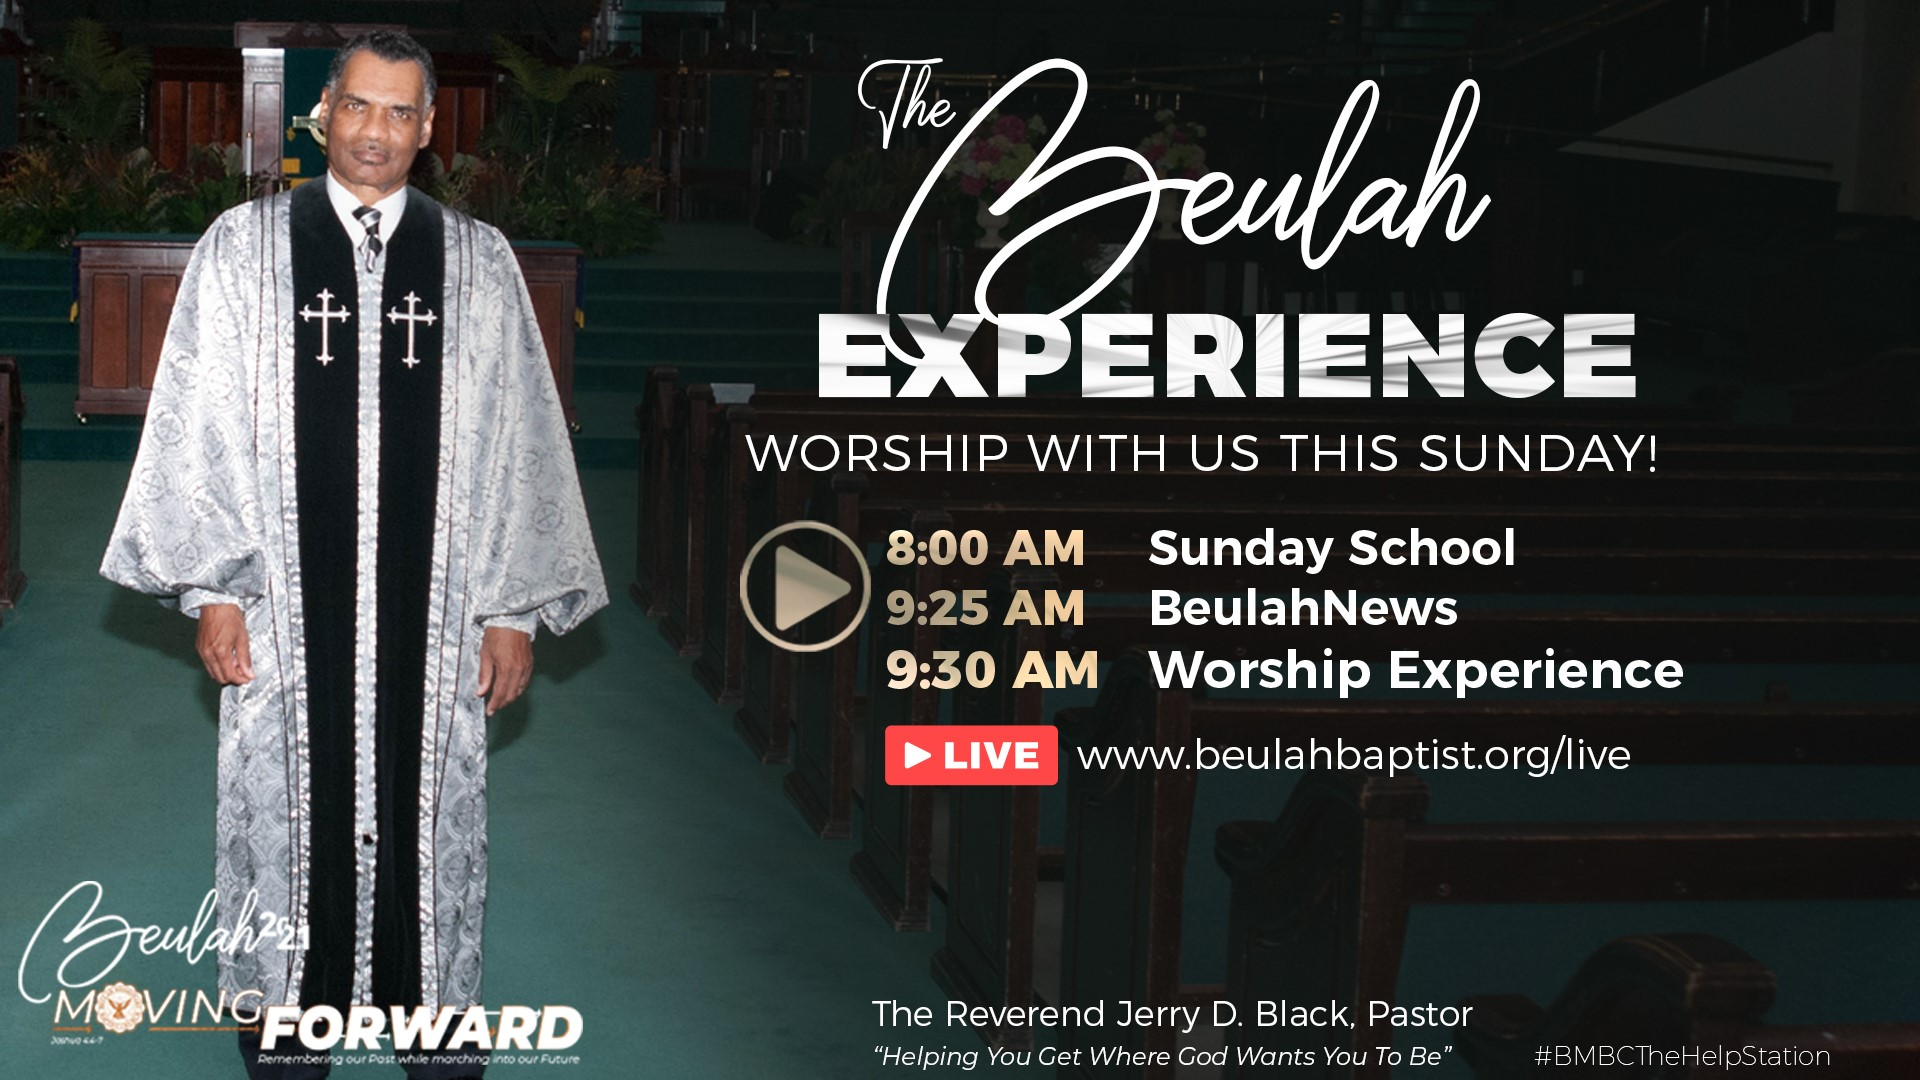 Beulah Missionary Baptist Church, Decatur, GA.  on 09-May-21-13:26:26